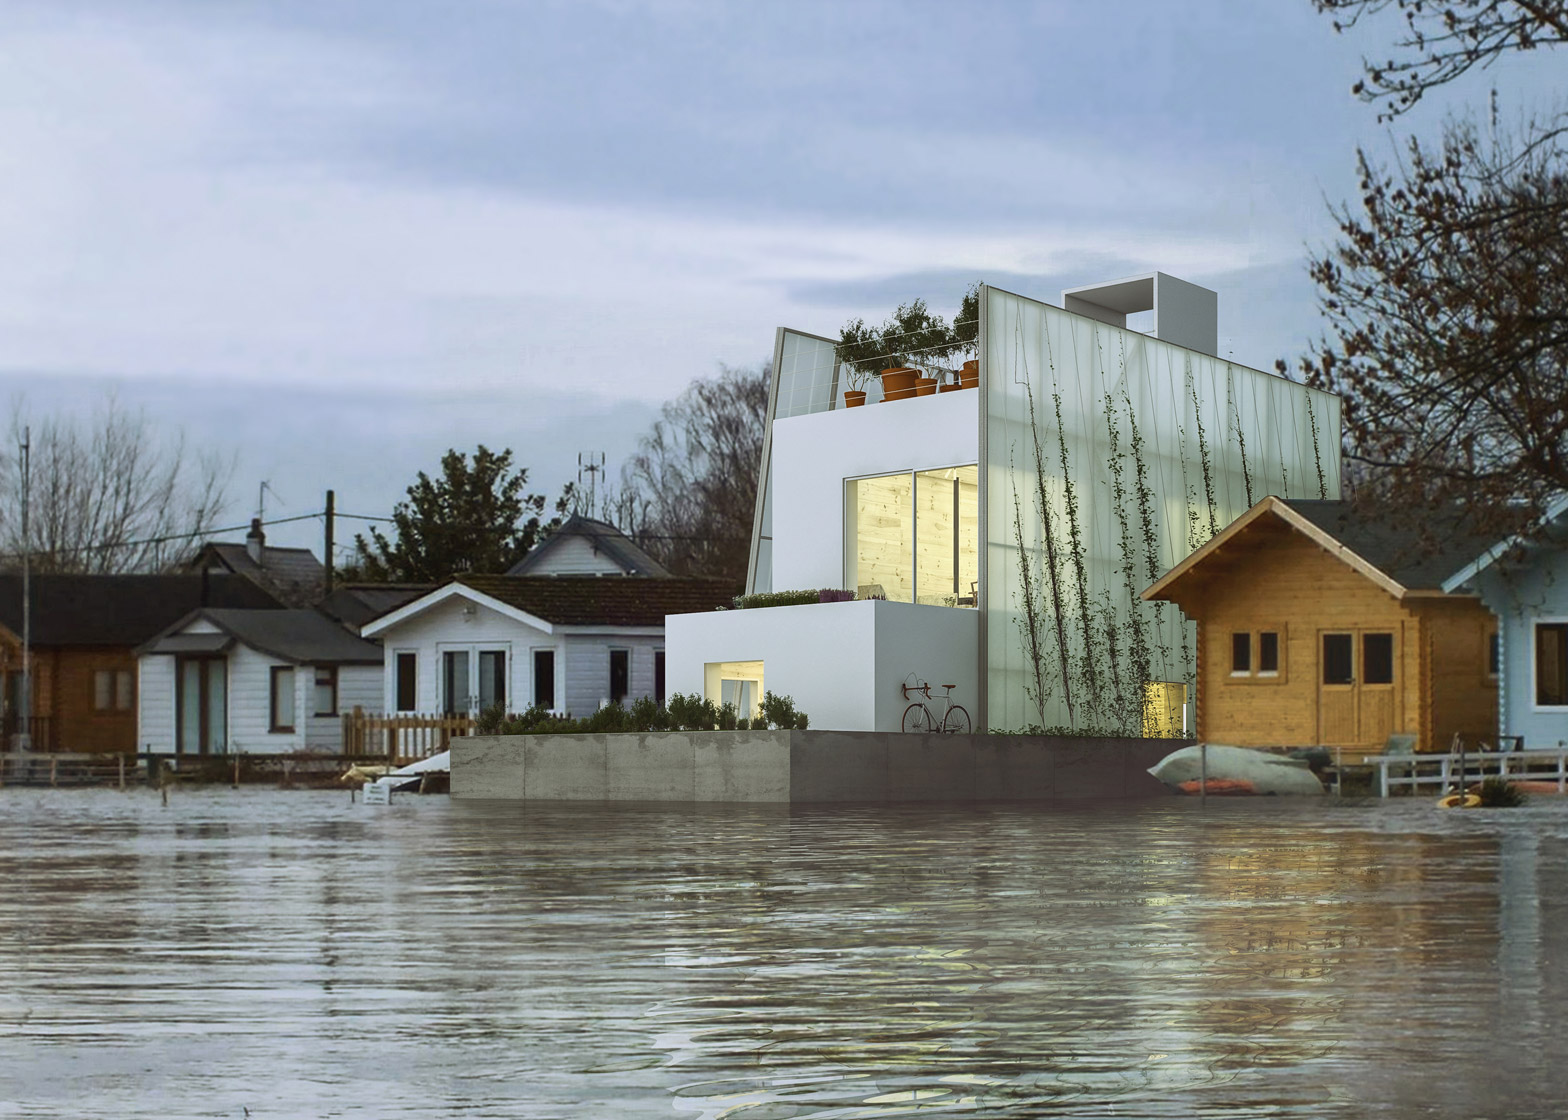 The-Floating-House-by-Carl-Turner-Architects_dezeen_1568